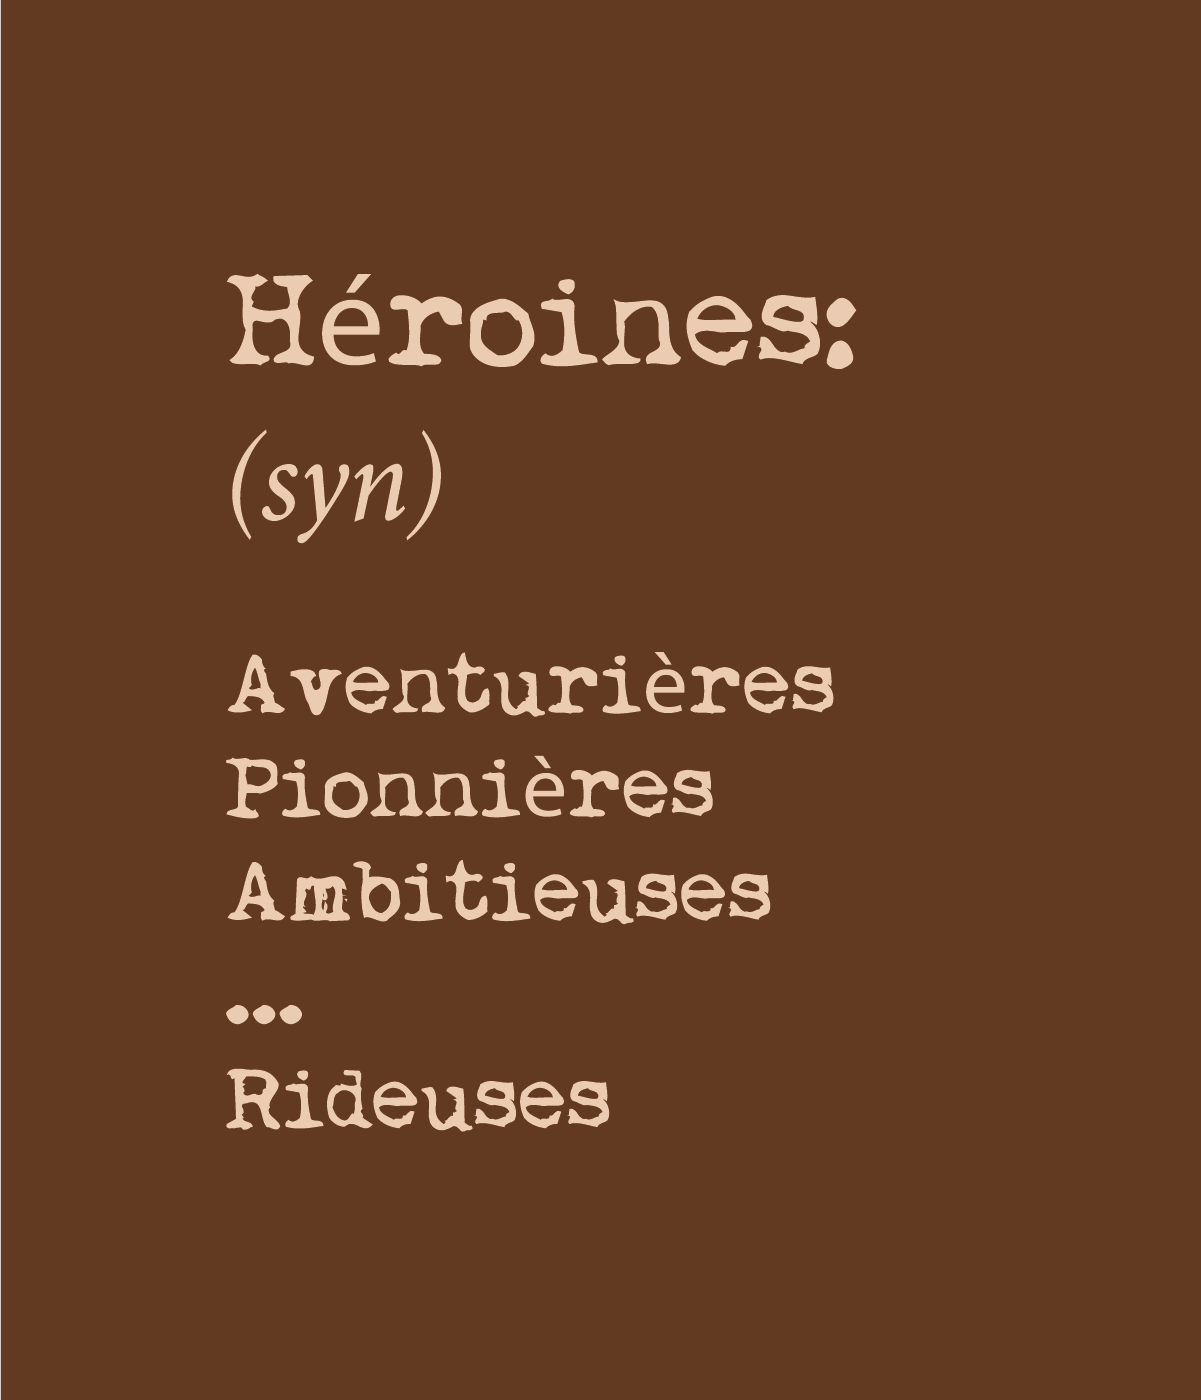 riding apparel for heroines